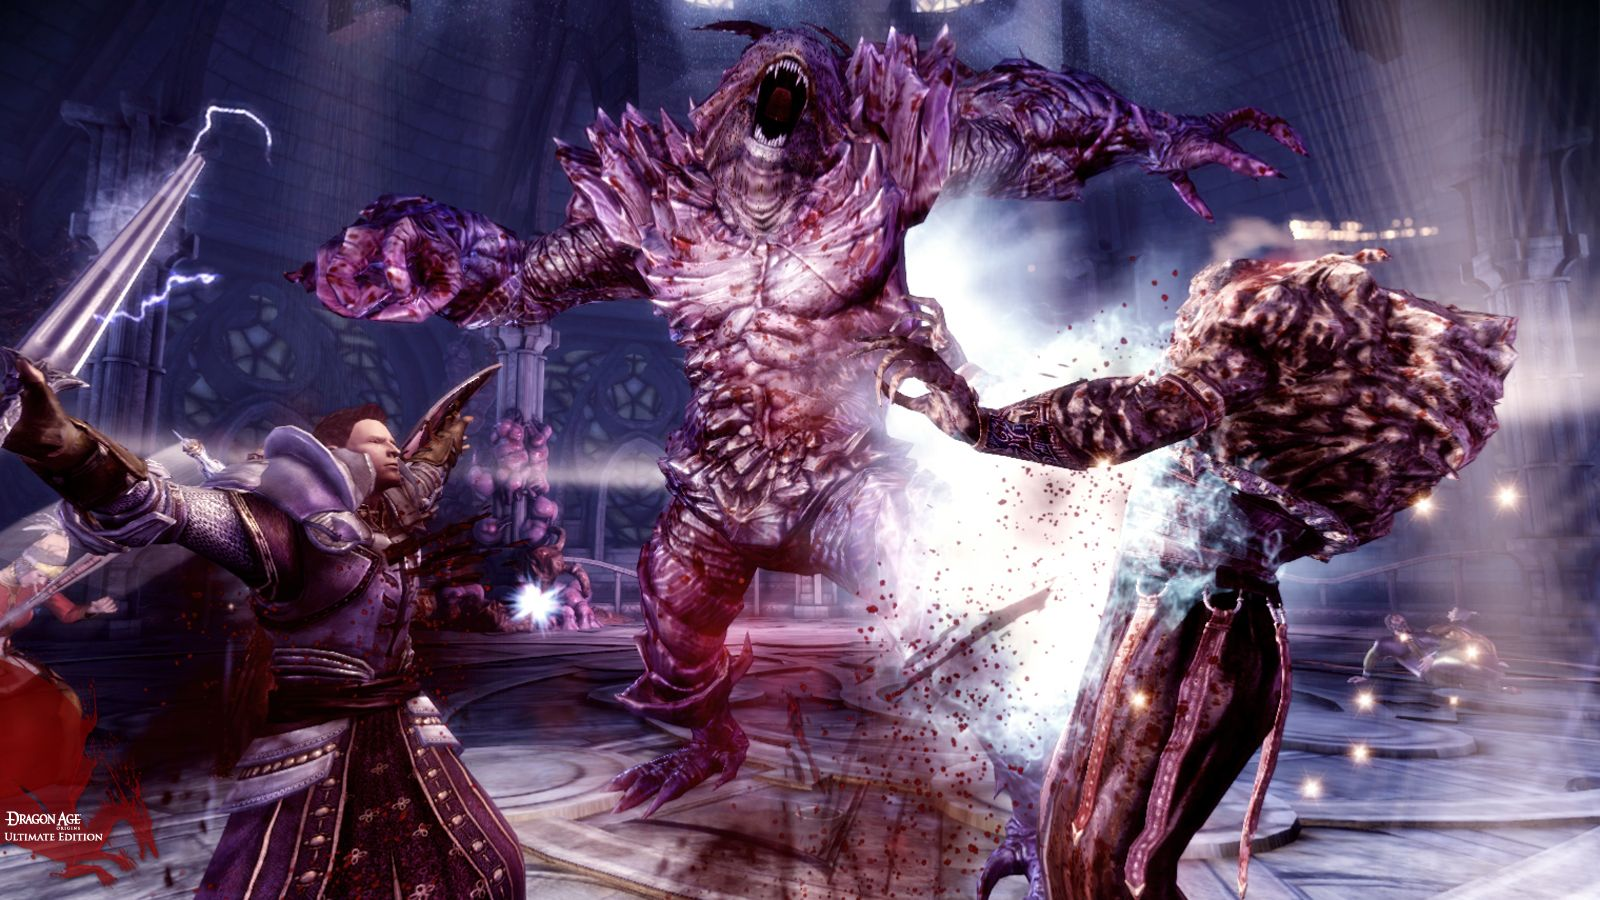 A screenshot of a huge fleshy monster roaring at your character in Dragon Age: Origins.